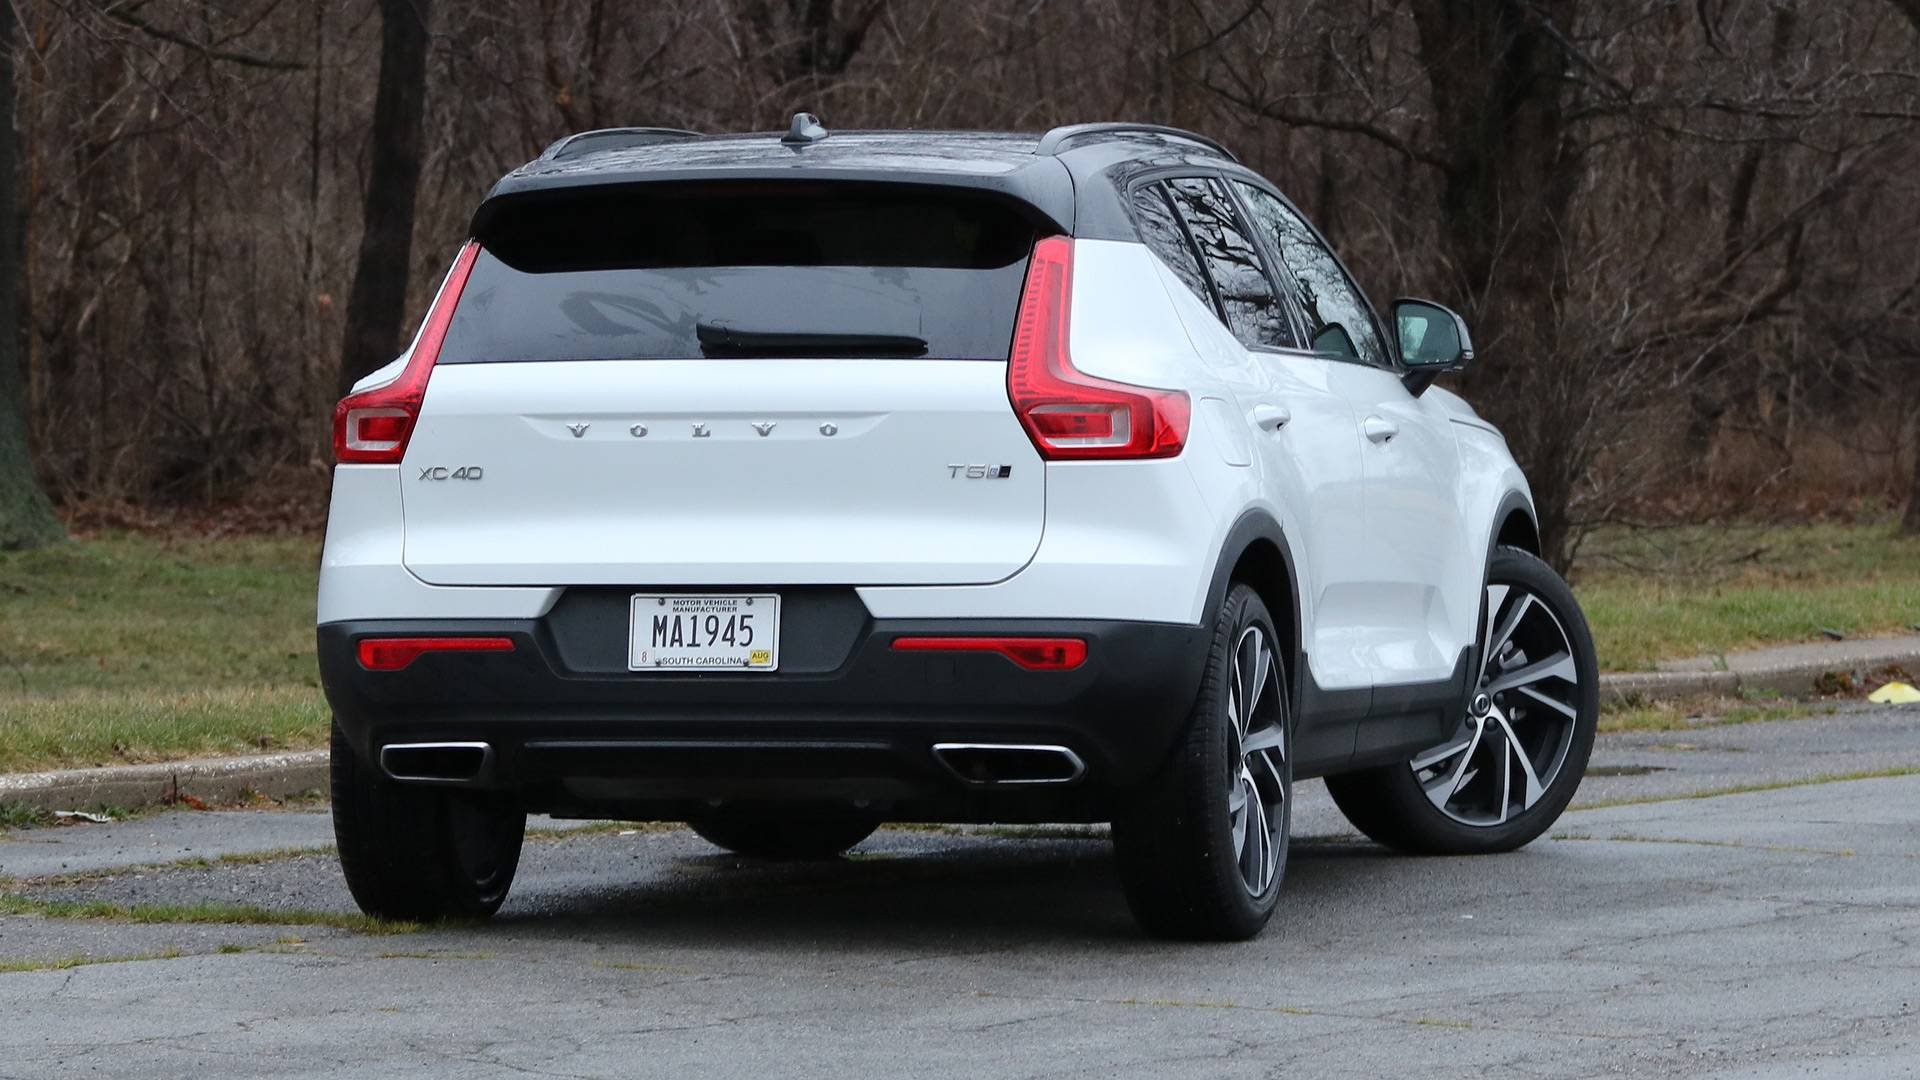 Volvo's First Three-Cylinder Engine Debuts In New XC40 In Europe